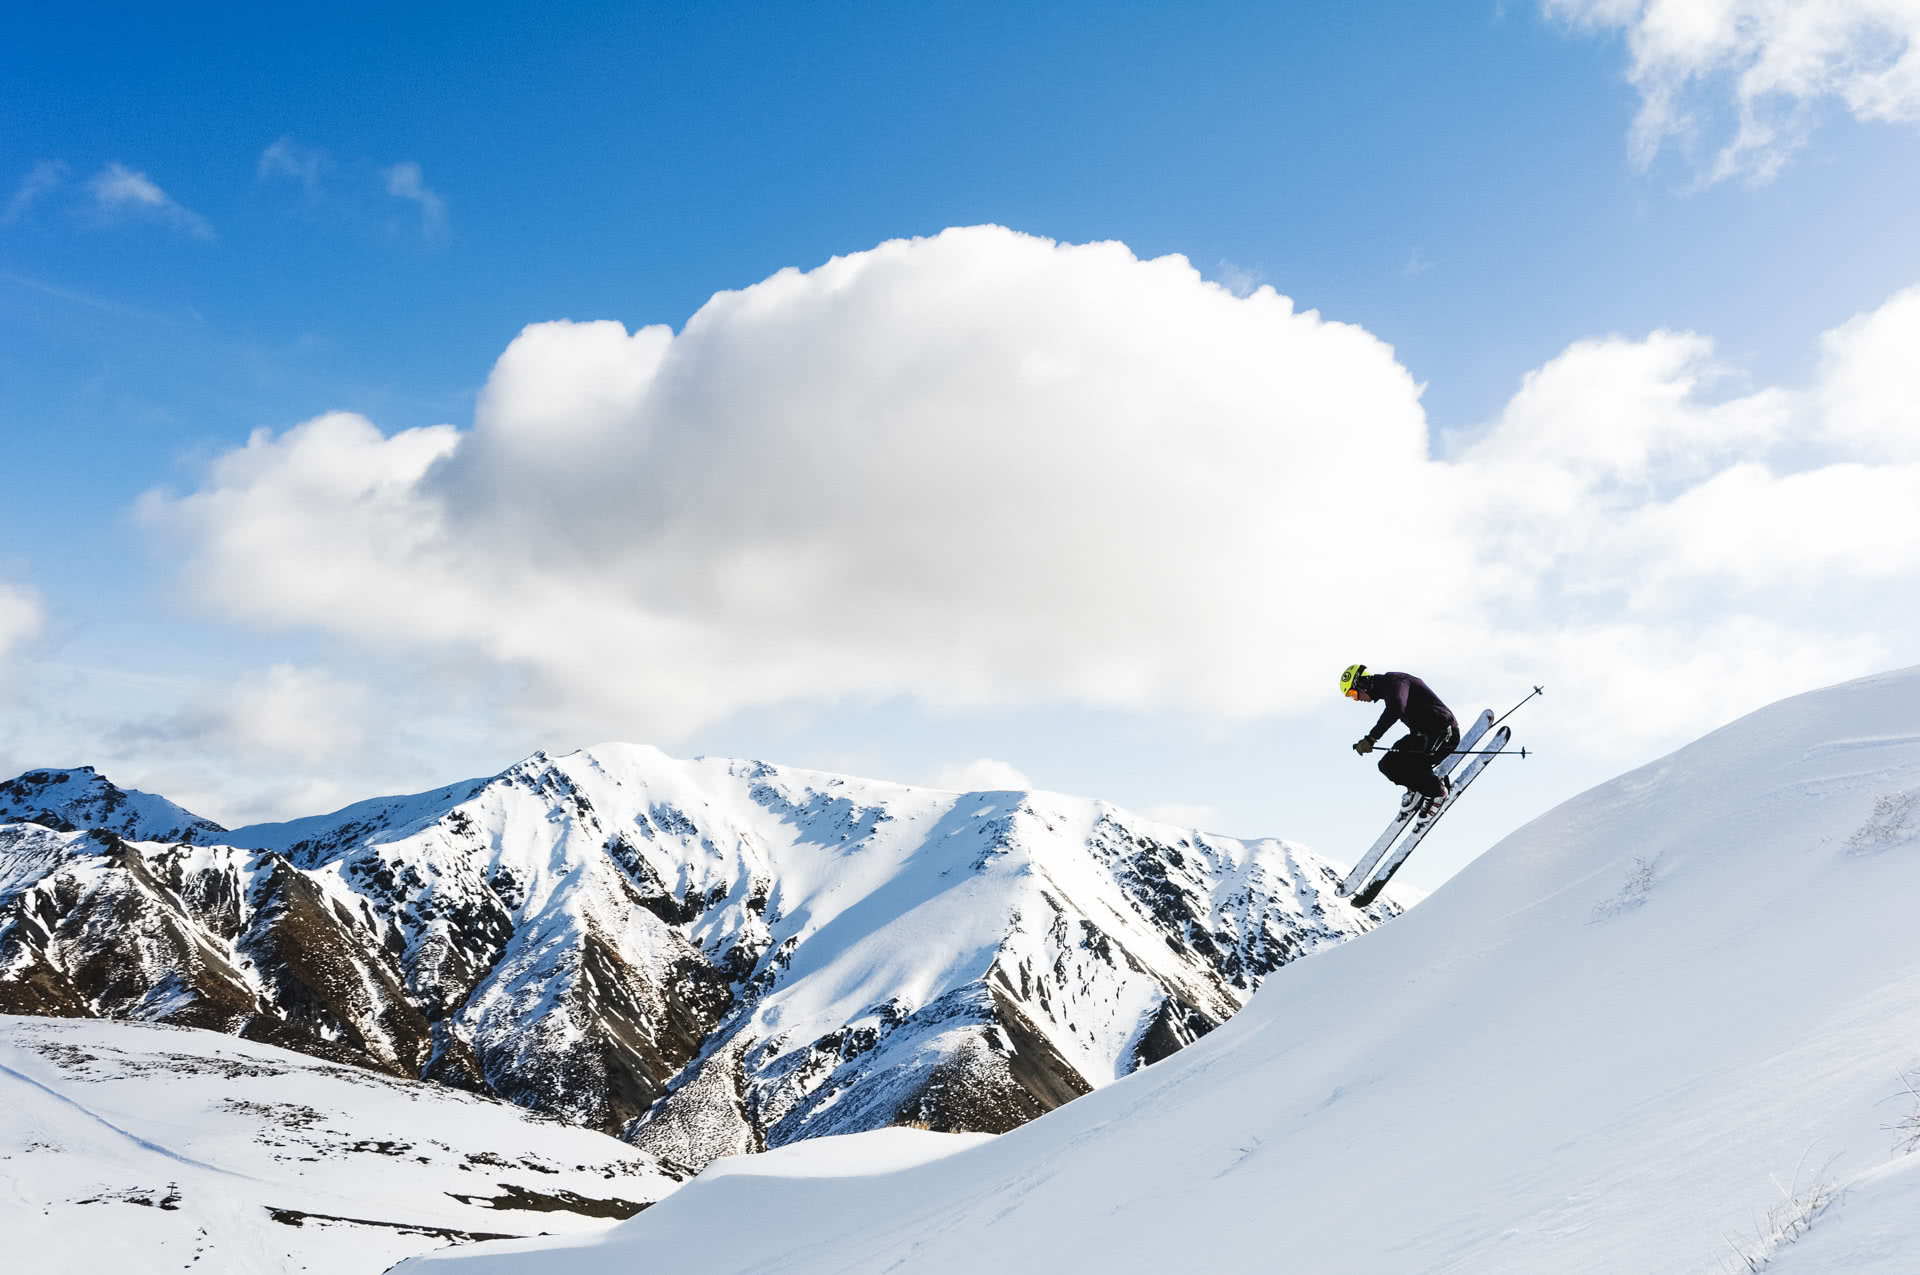 15 Taking the air at Mt Lyford, 24 Incredible Ski Fields & Resorts in New Zealand, Huw kingston, New Zealand, skiing, south island, jump